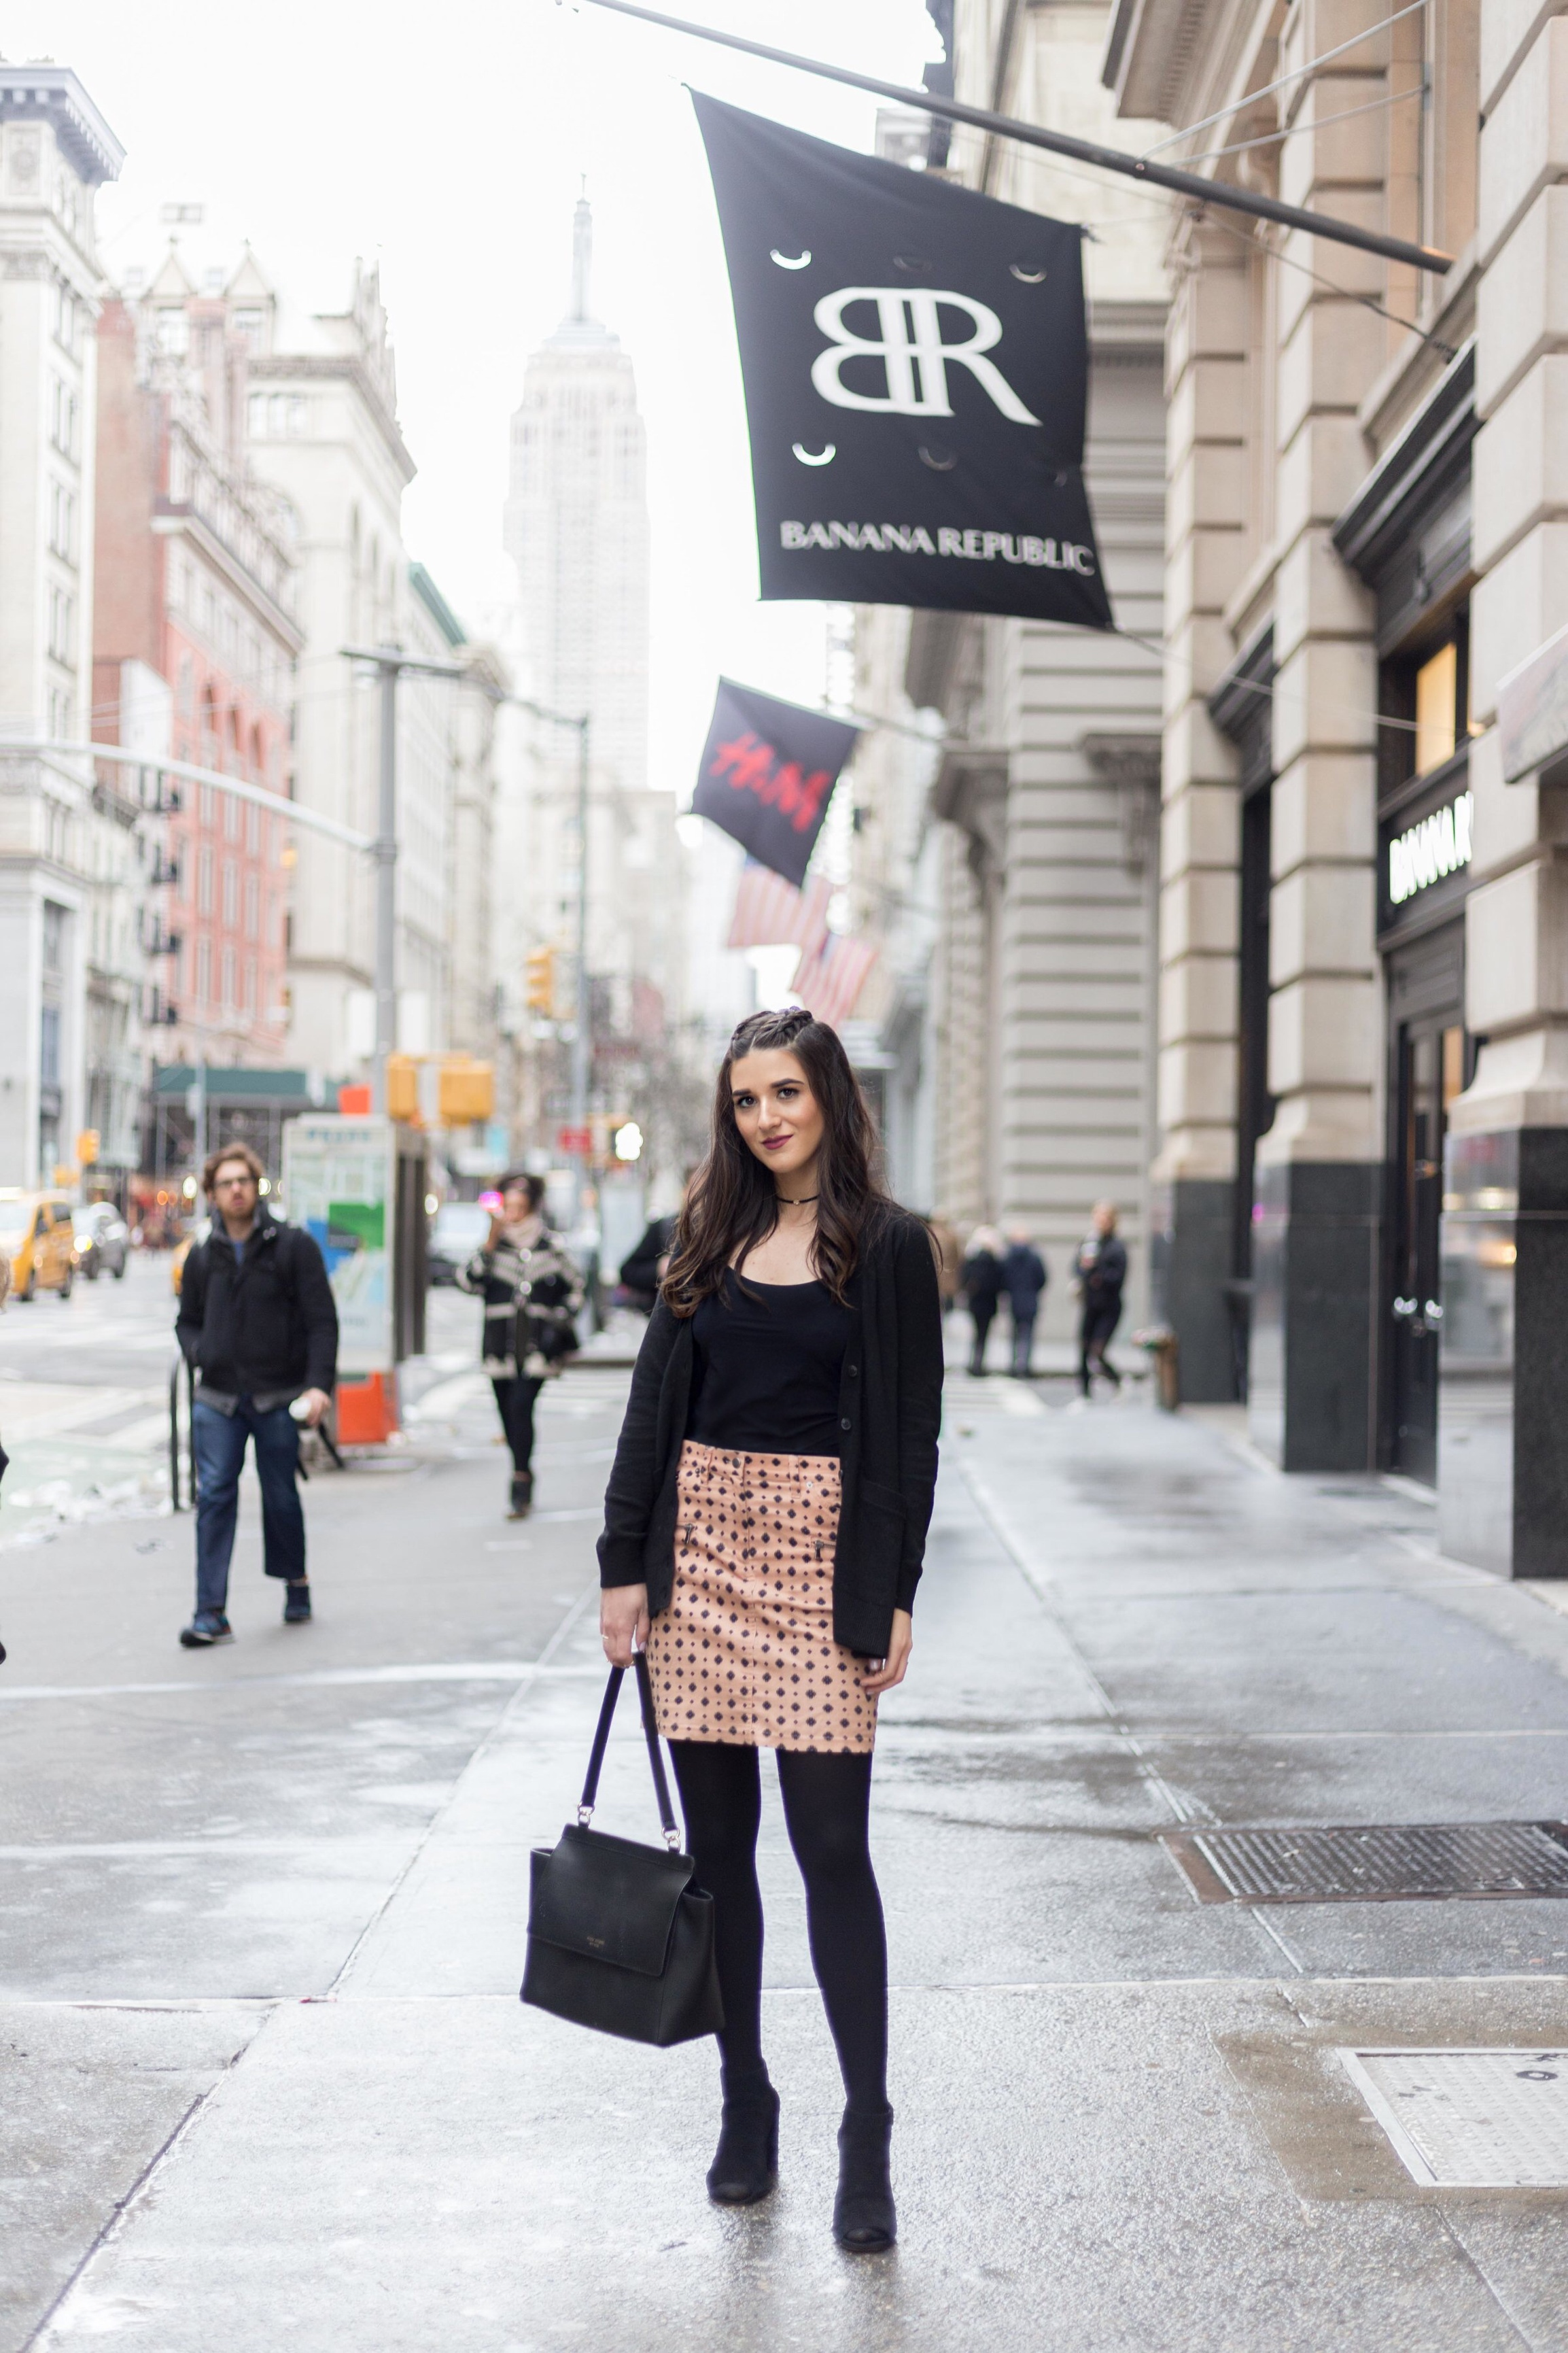 Banana Republic Black Cardigan Corduroy Skirt Why I'm Excited For Spring Esther Santer Fashion Blog NYC Street Style Blogger Outfit OOTD Trendy Braids Hairstyle Tights Commando Tank Top Bodysuit Girl Women Club Monaco Choker Henri Bendel Bag Purse.jpg